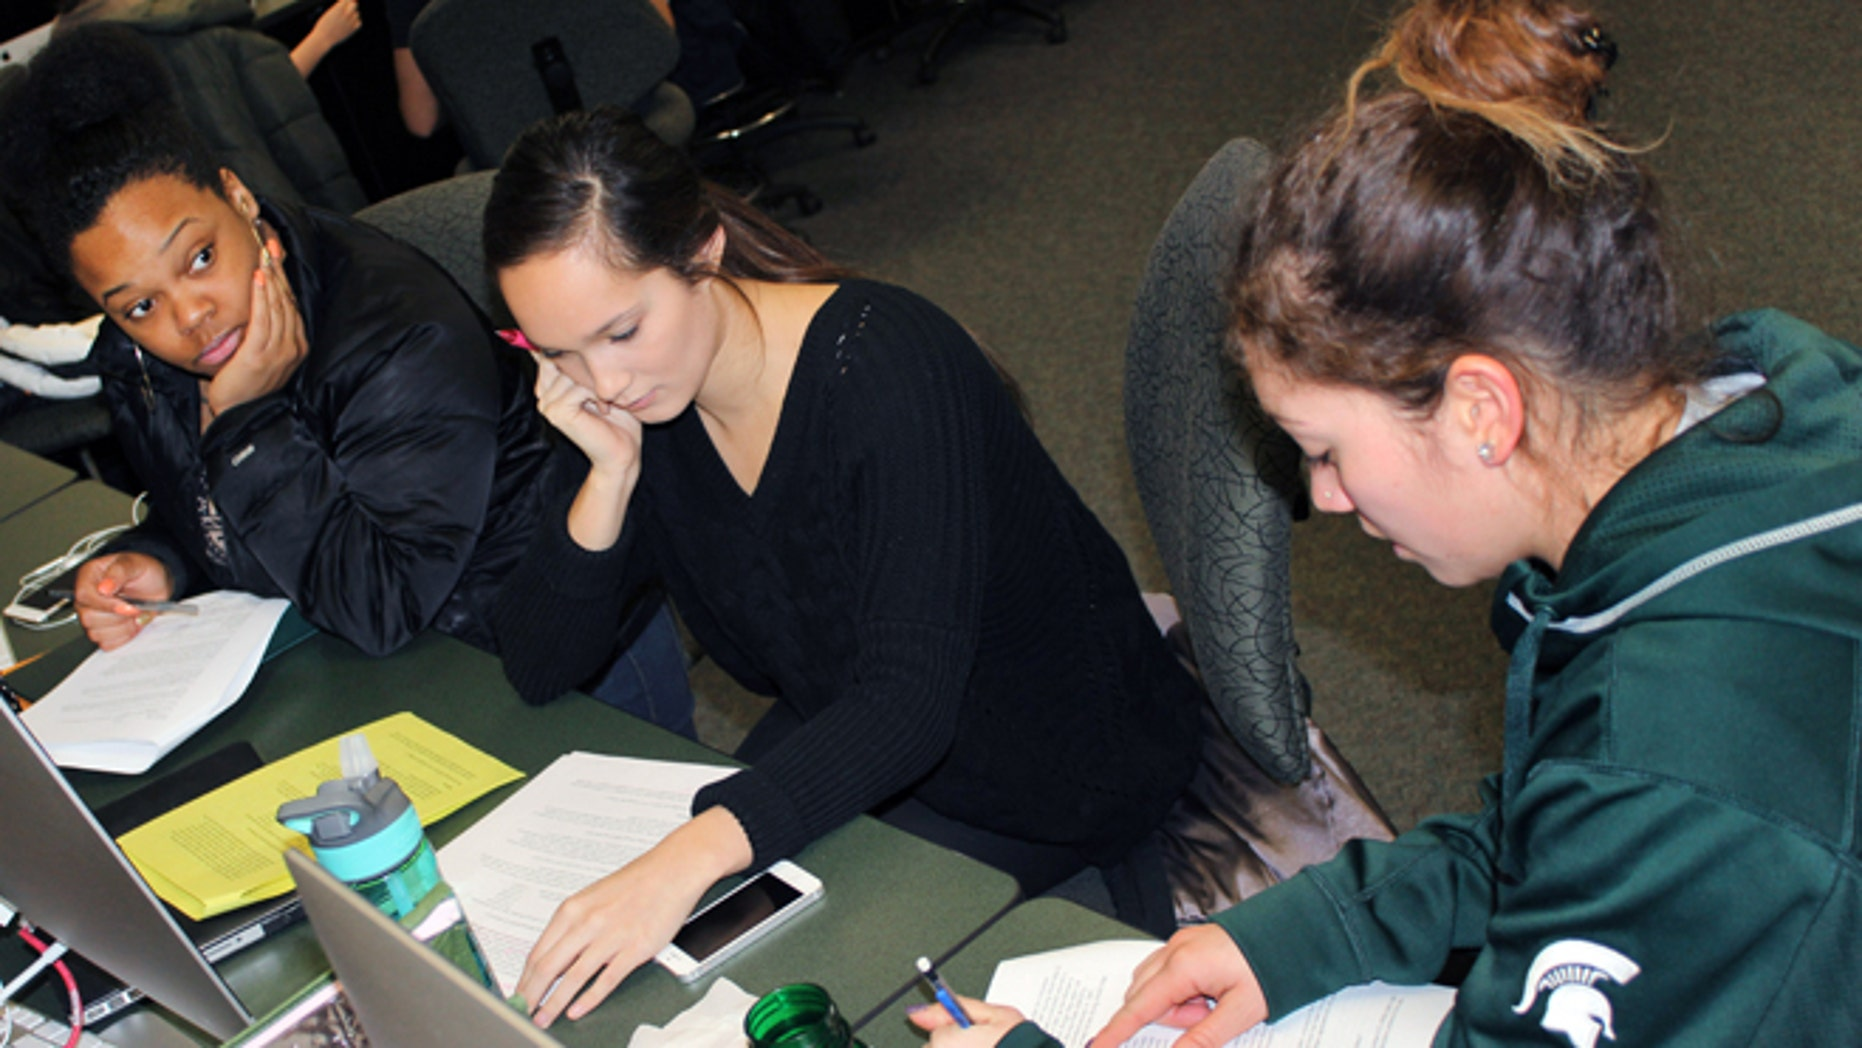 In this March 1, 2015 photo released by Joe Grimm, Michigan State University students Tiara Jones, from left, Madeline Carino and Lia Kamana work on a new book â100 Questions and Answers About Veteransâ in East Lansing, Mich. The new book, researched and written by a Michigan State journalism class with assistance from former servicemen and women, is aimed at clearing up myths and misunderstandings held by some civilians.  (AP Photo/Joe Grimm)